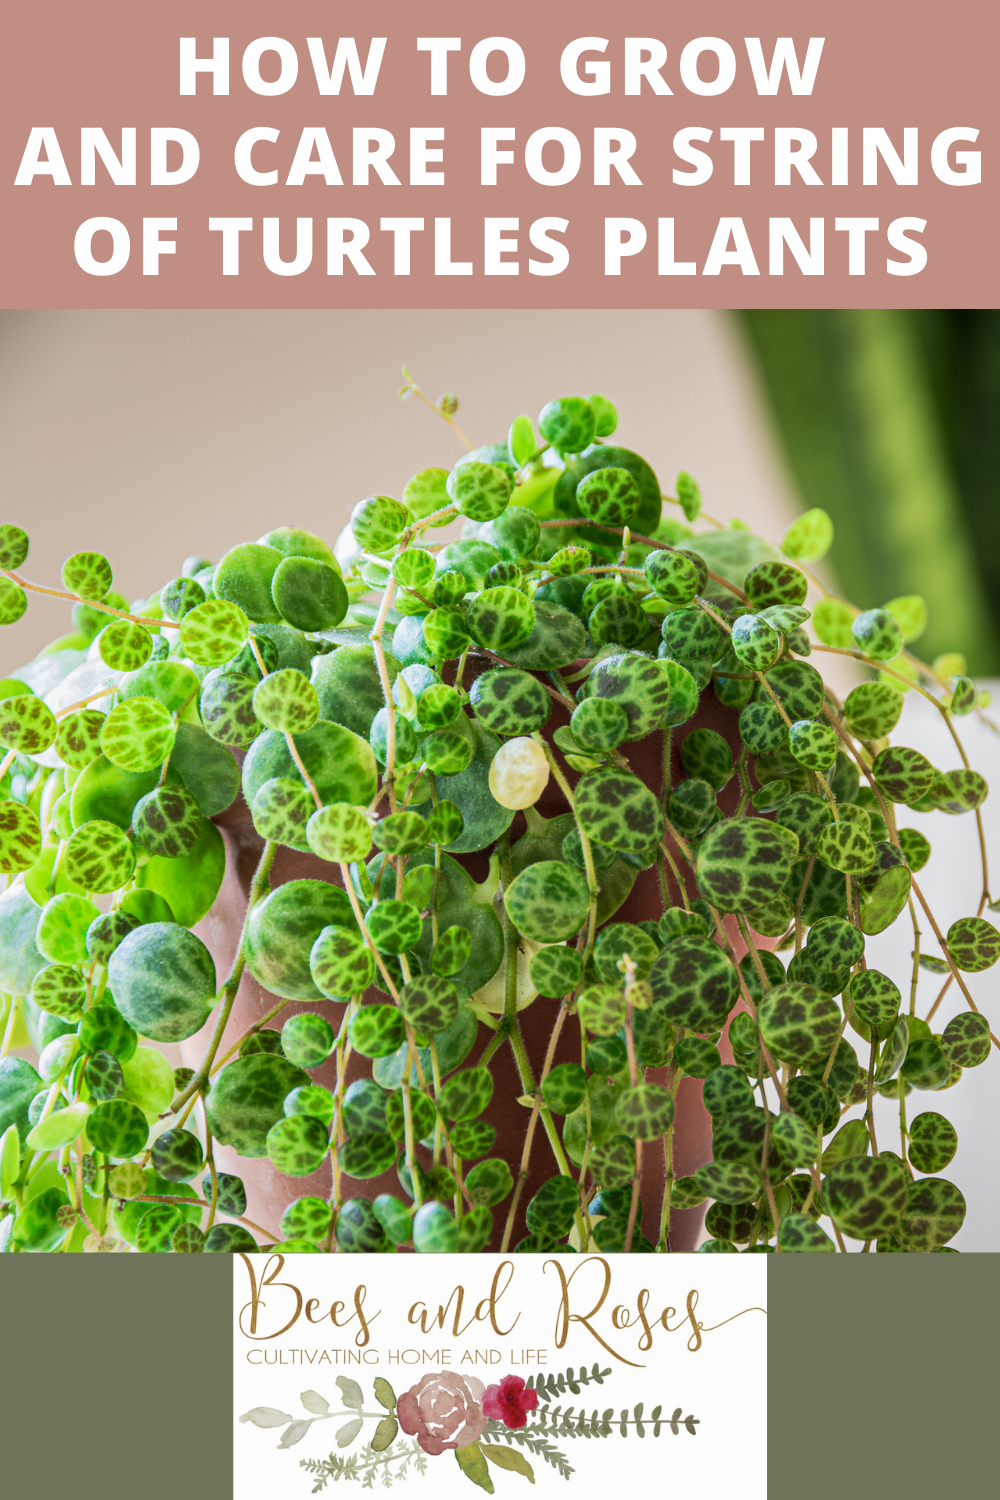 How to grow and care for the String of Turtles plant